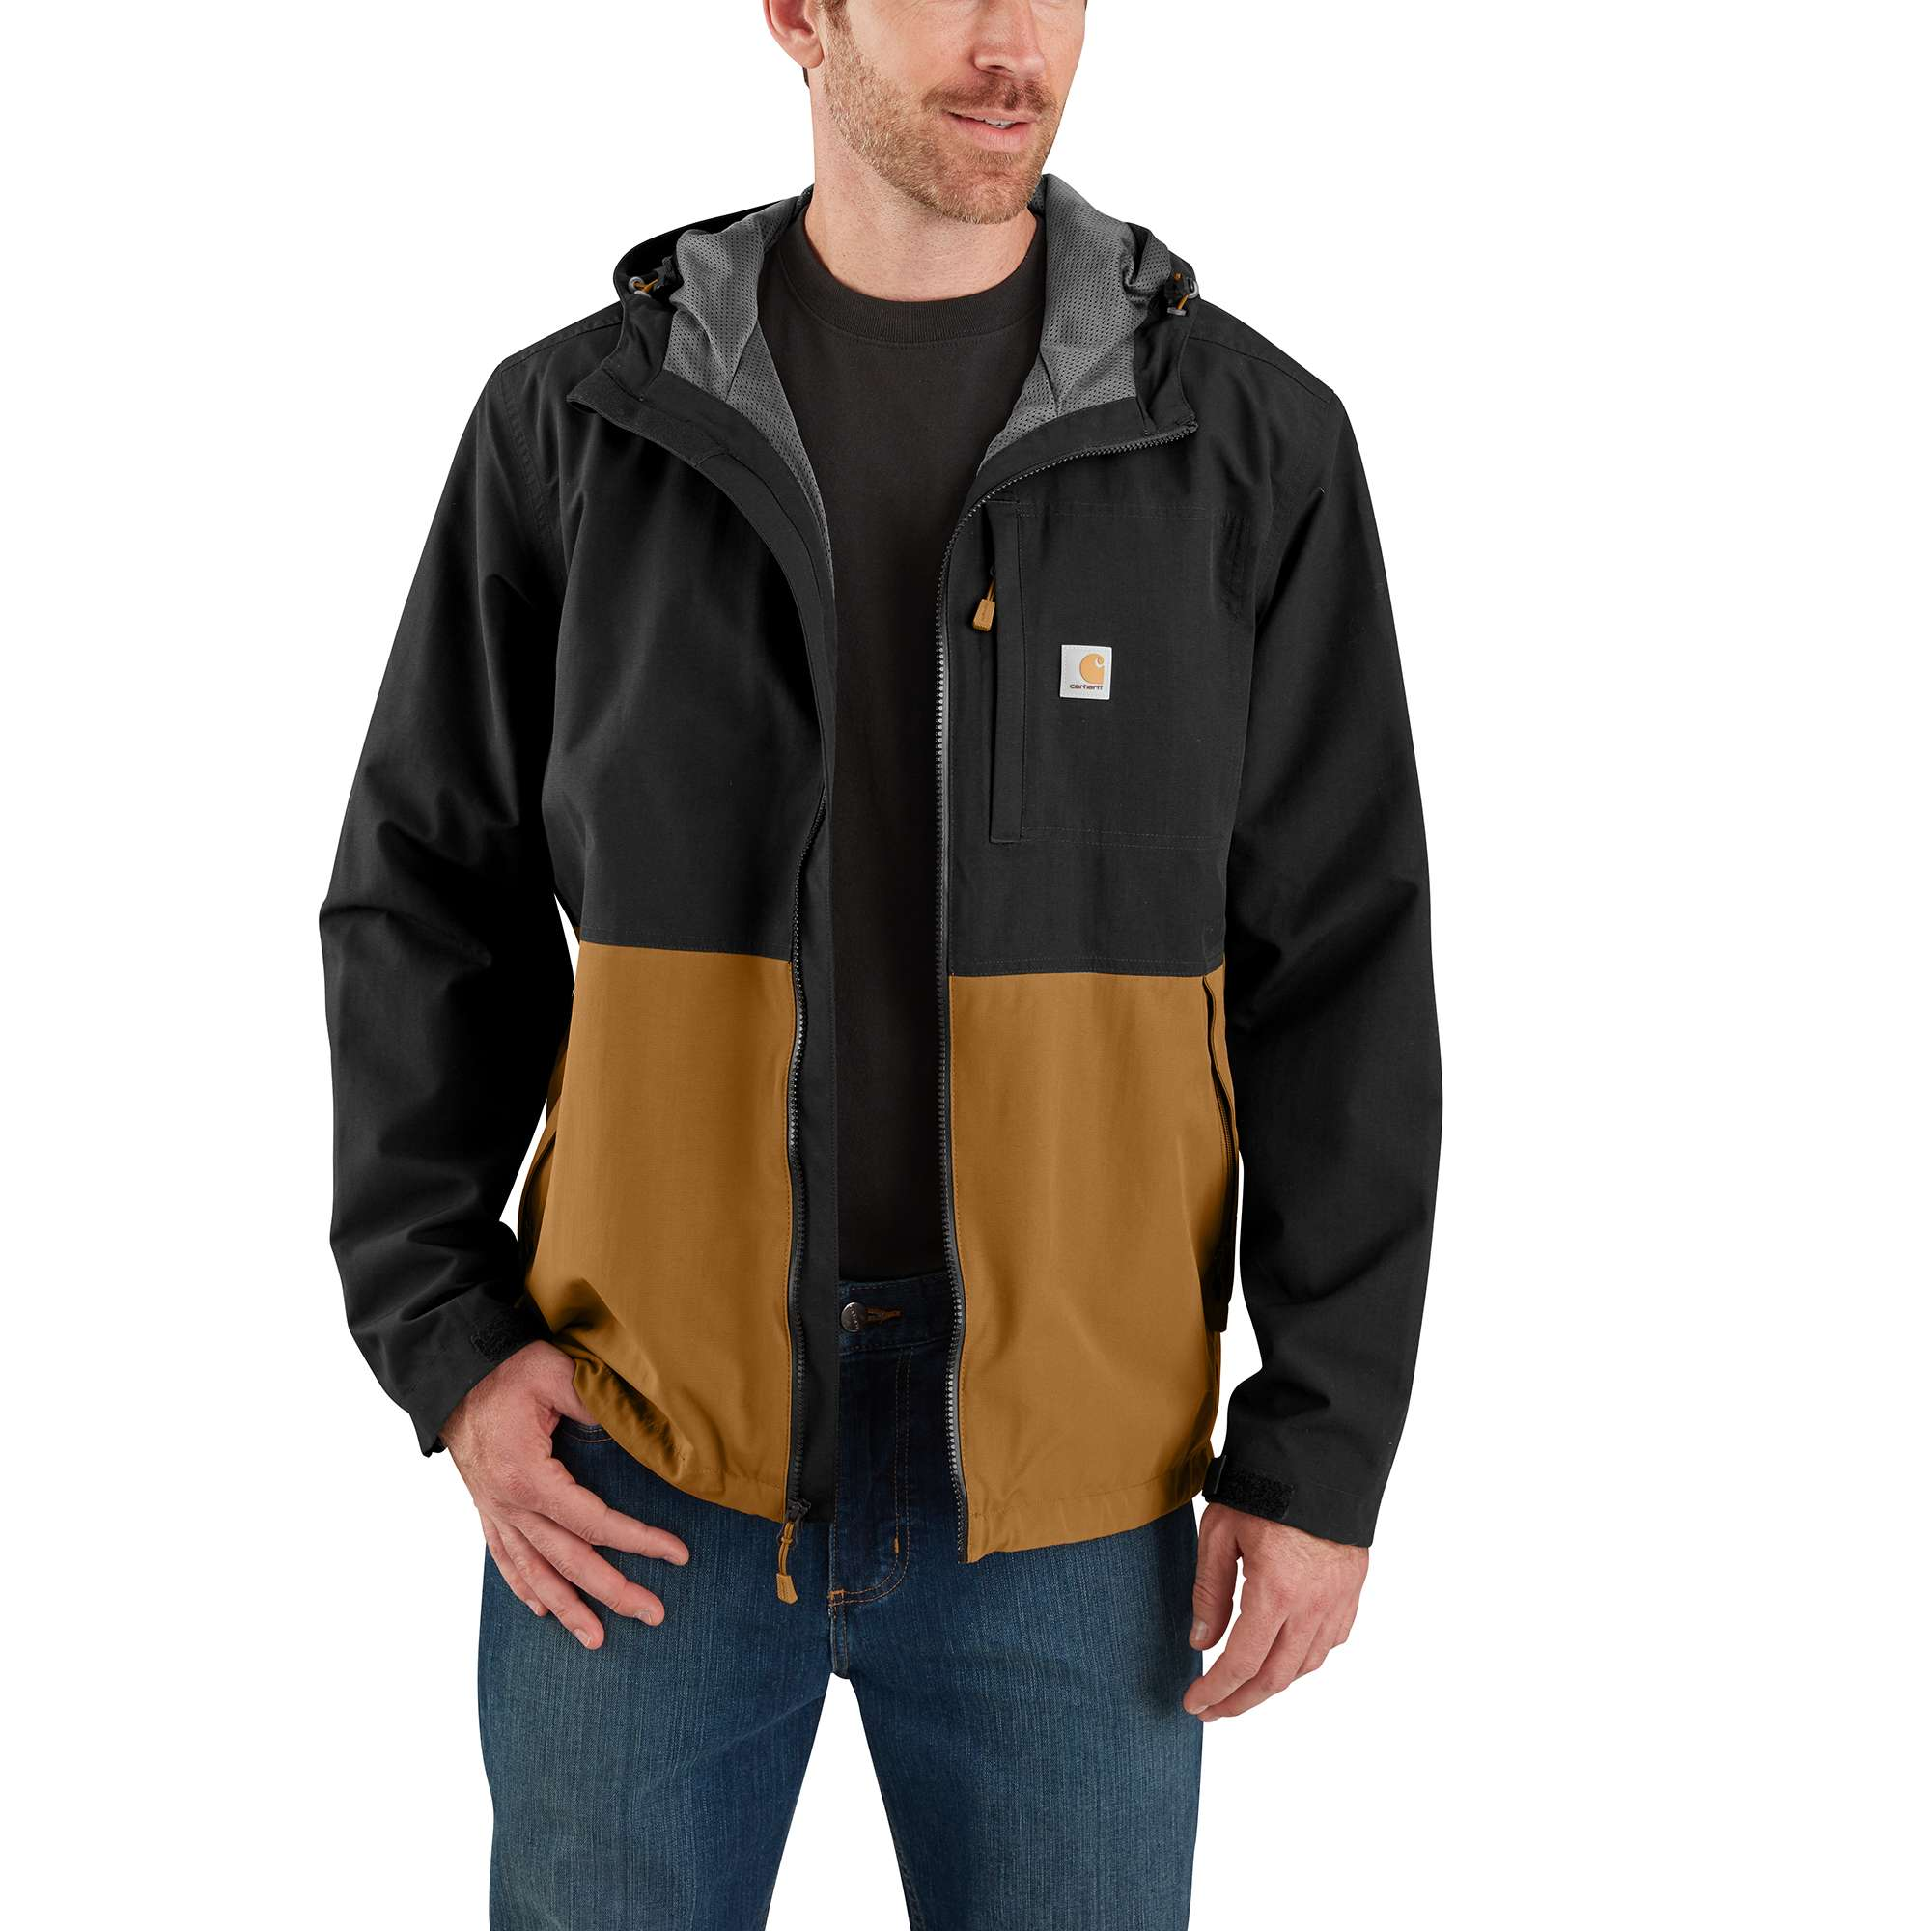 Carhartt Storm Defender Hooded Jacket